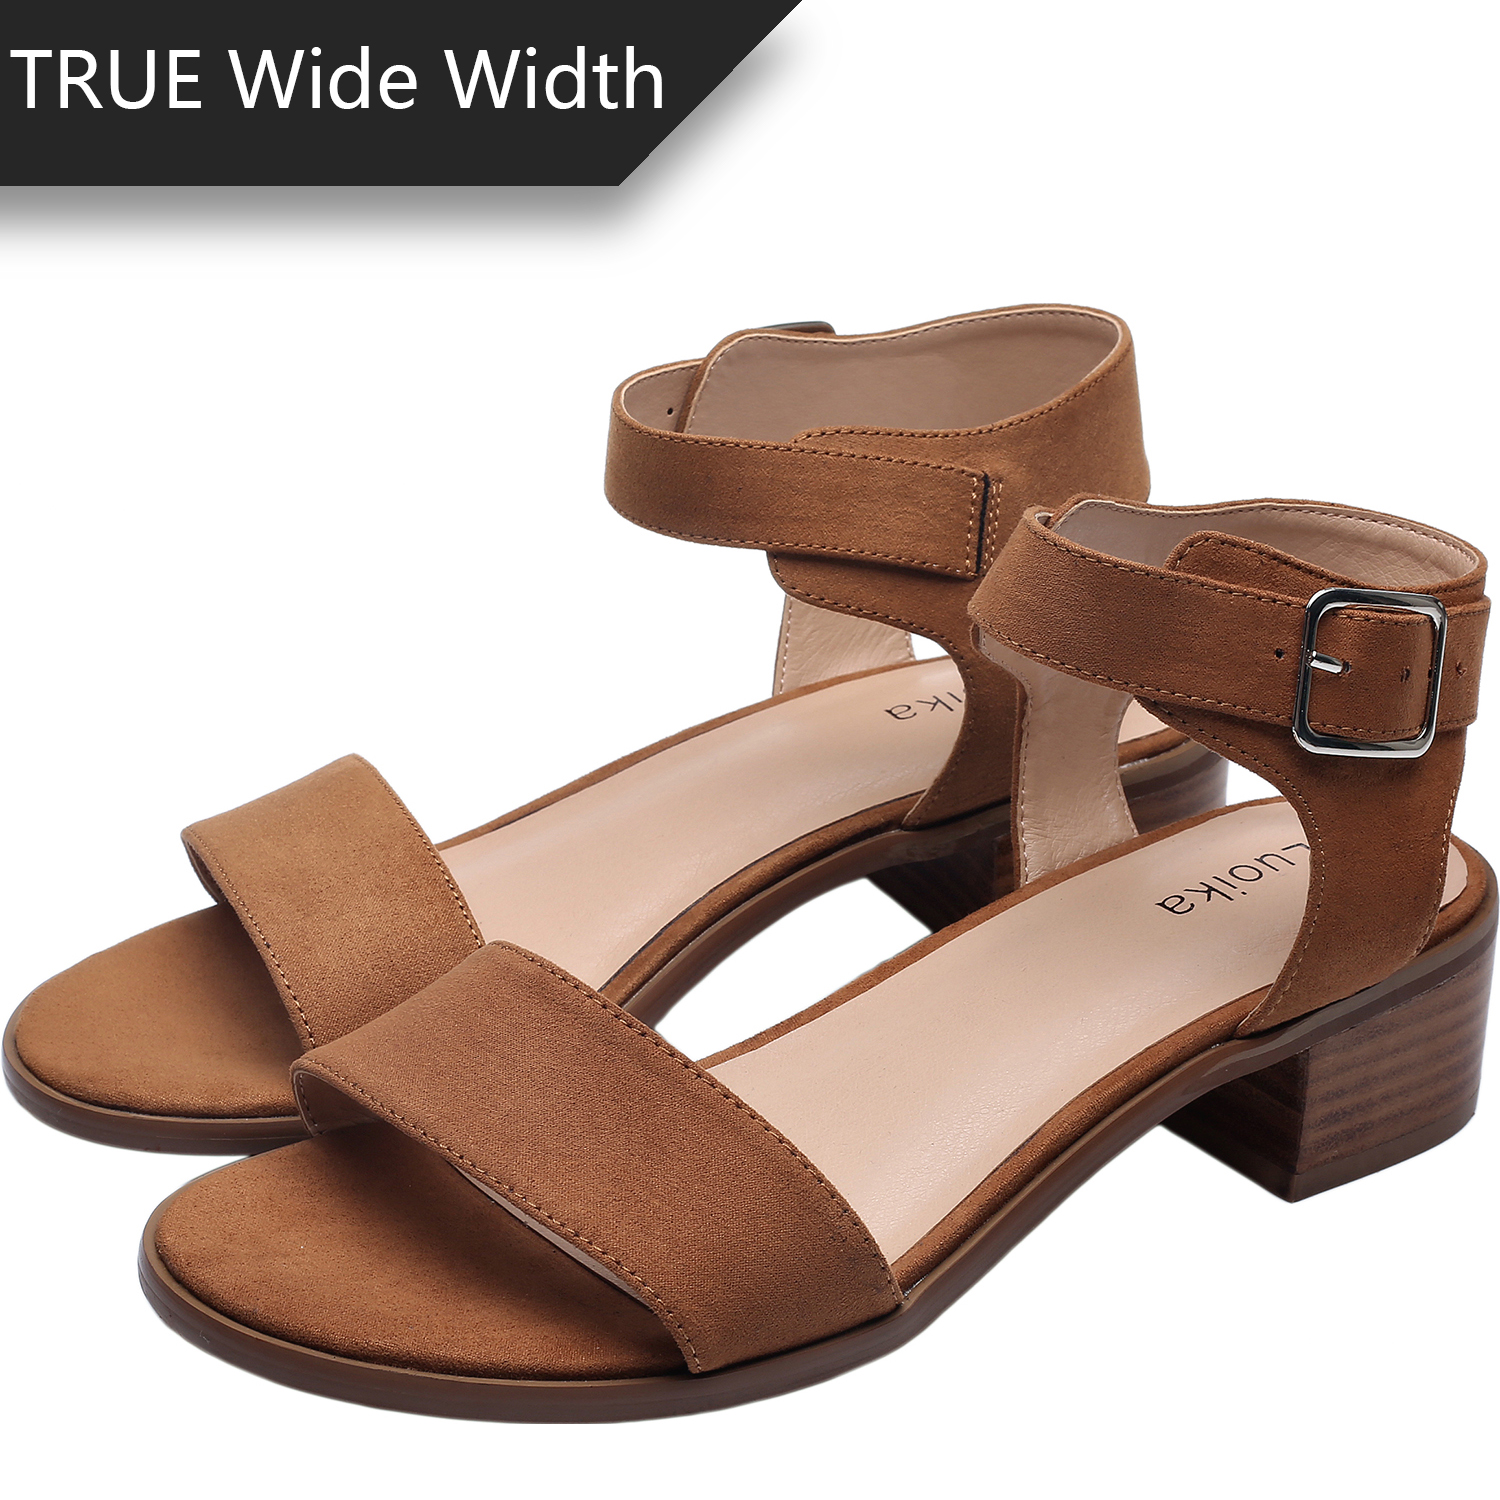 d2db052b0d US$ 29.99 - Luoika Women's Wide Width Heeled Sandals - Classic Low Block  Heel Open Toe Ankle Strap Suede Summer Shoes. - www.luoika-us.com